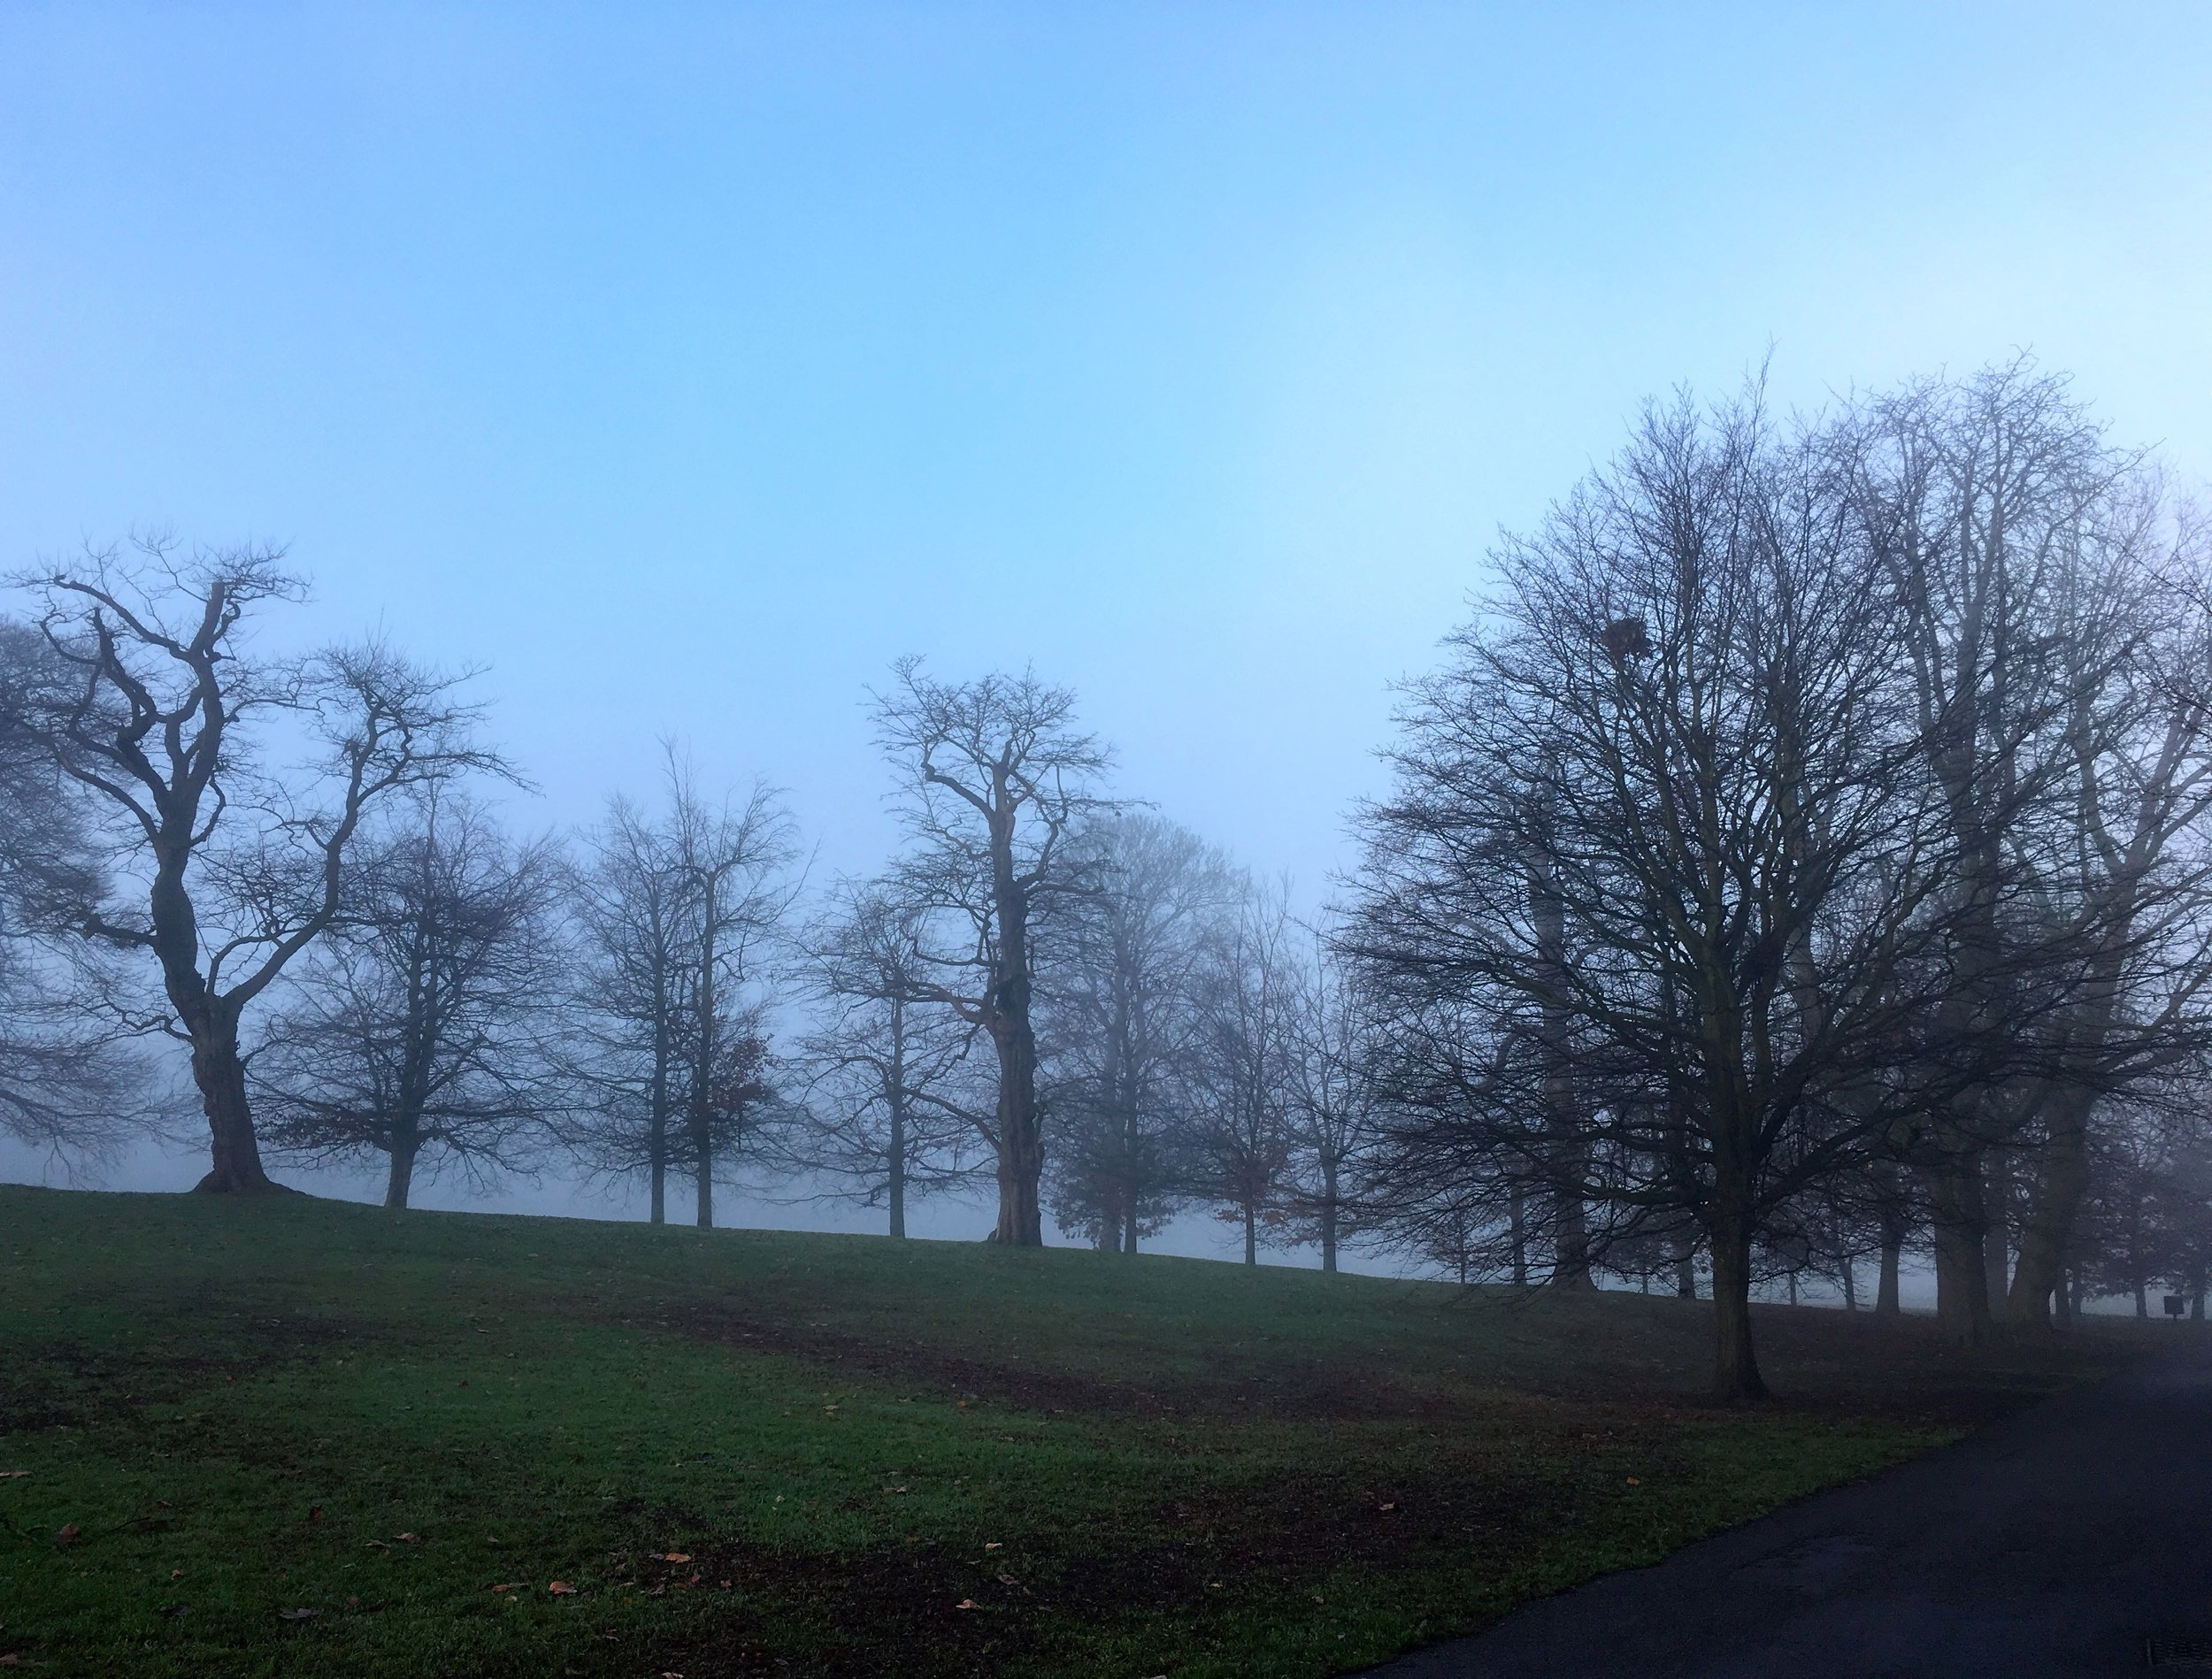 trees on the horizon on a frosty morning